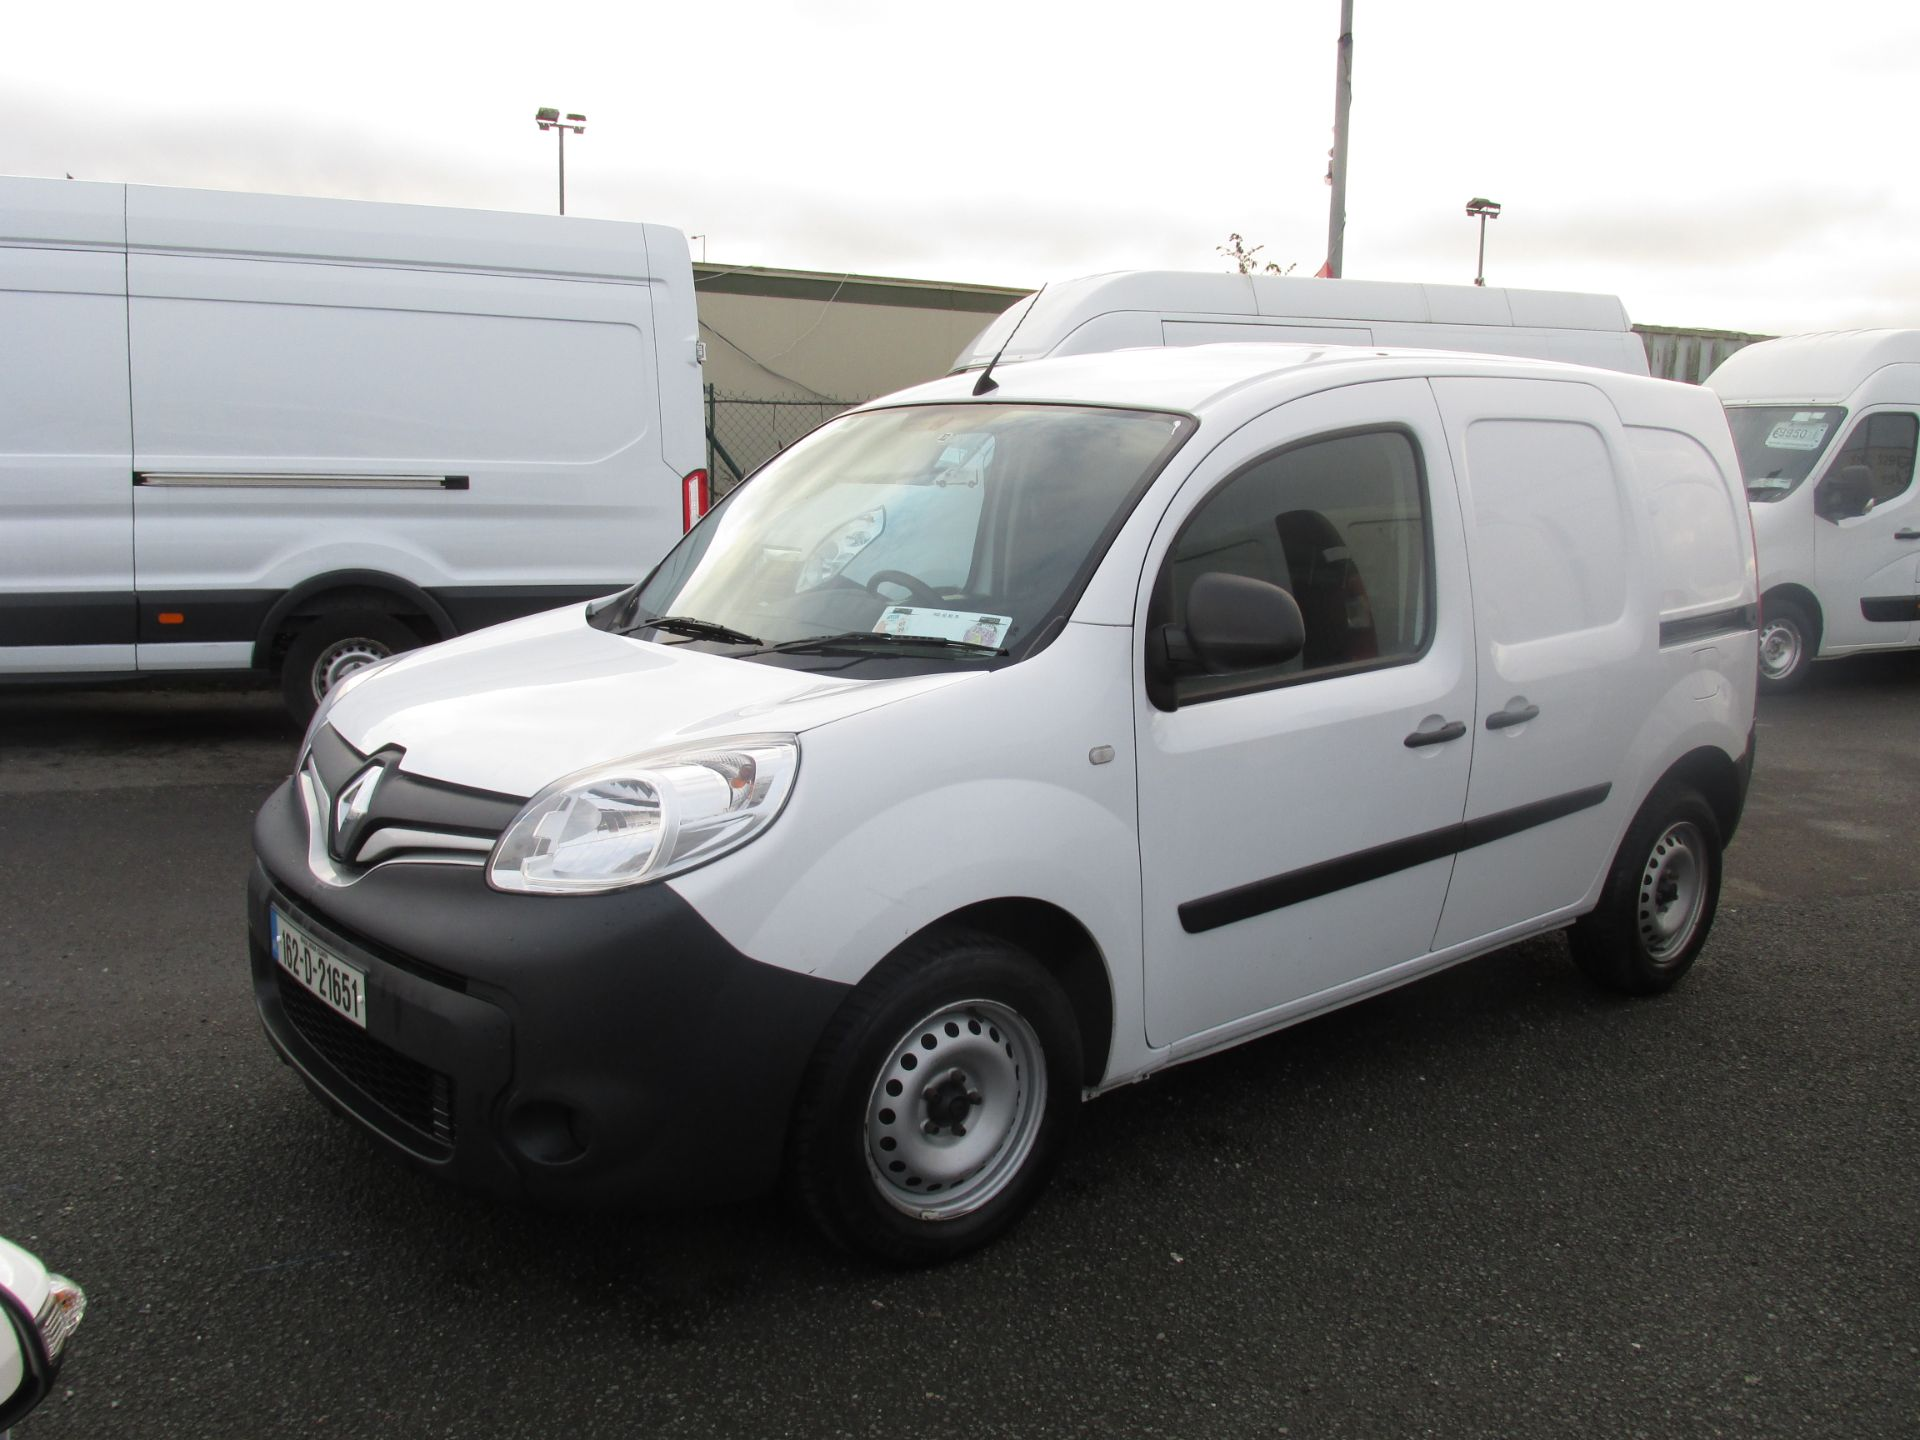 2016 Renault Kangoo ML19 Energy DCI 75 Business 2D - 100 VANS TO VIEW IN VM SANTRY DUBLIN - (162D21651) Image 7